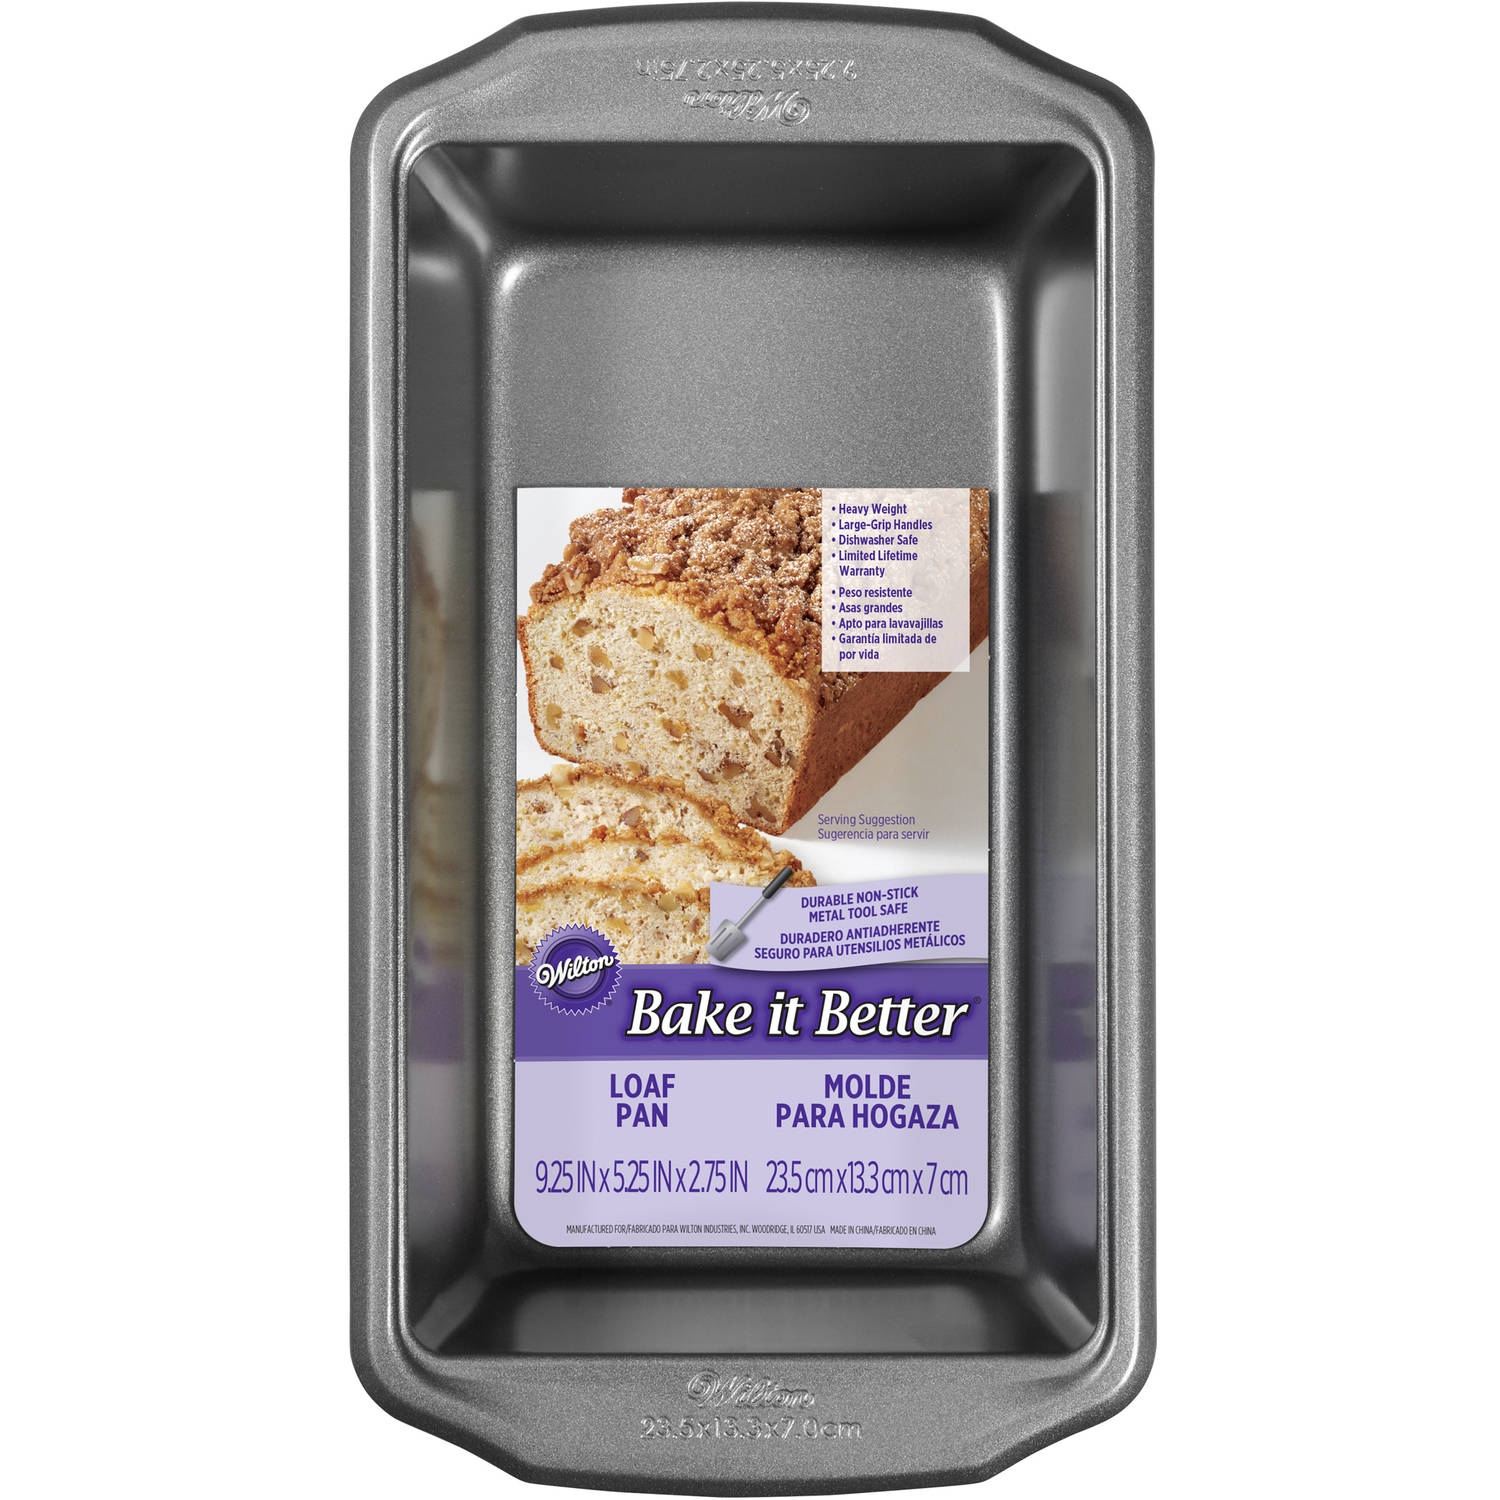 Wilton Bake It Better 9 x 5 Large Loaf Pan